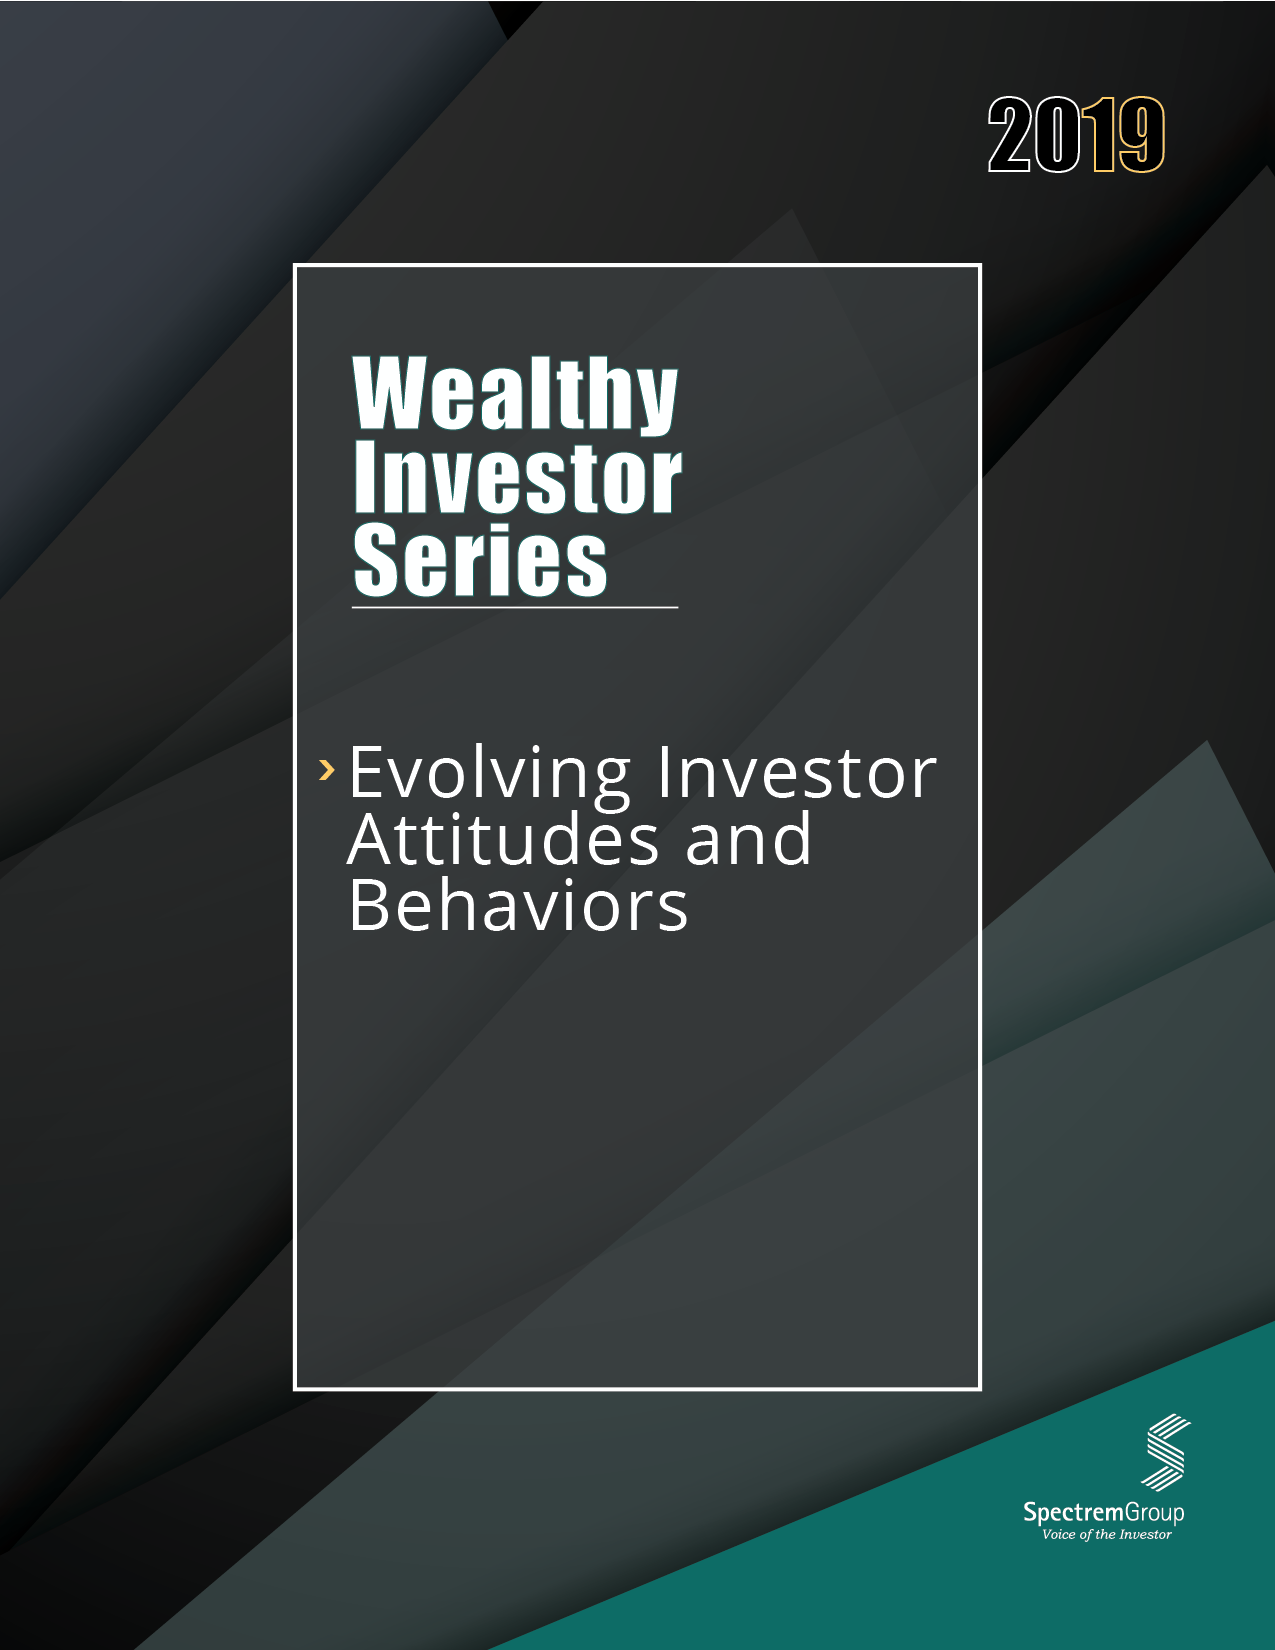 Wealthy Investor Series: Evolving Investor Attitudes and Behaviors